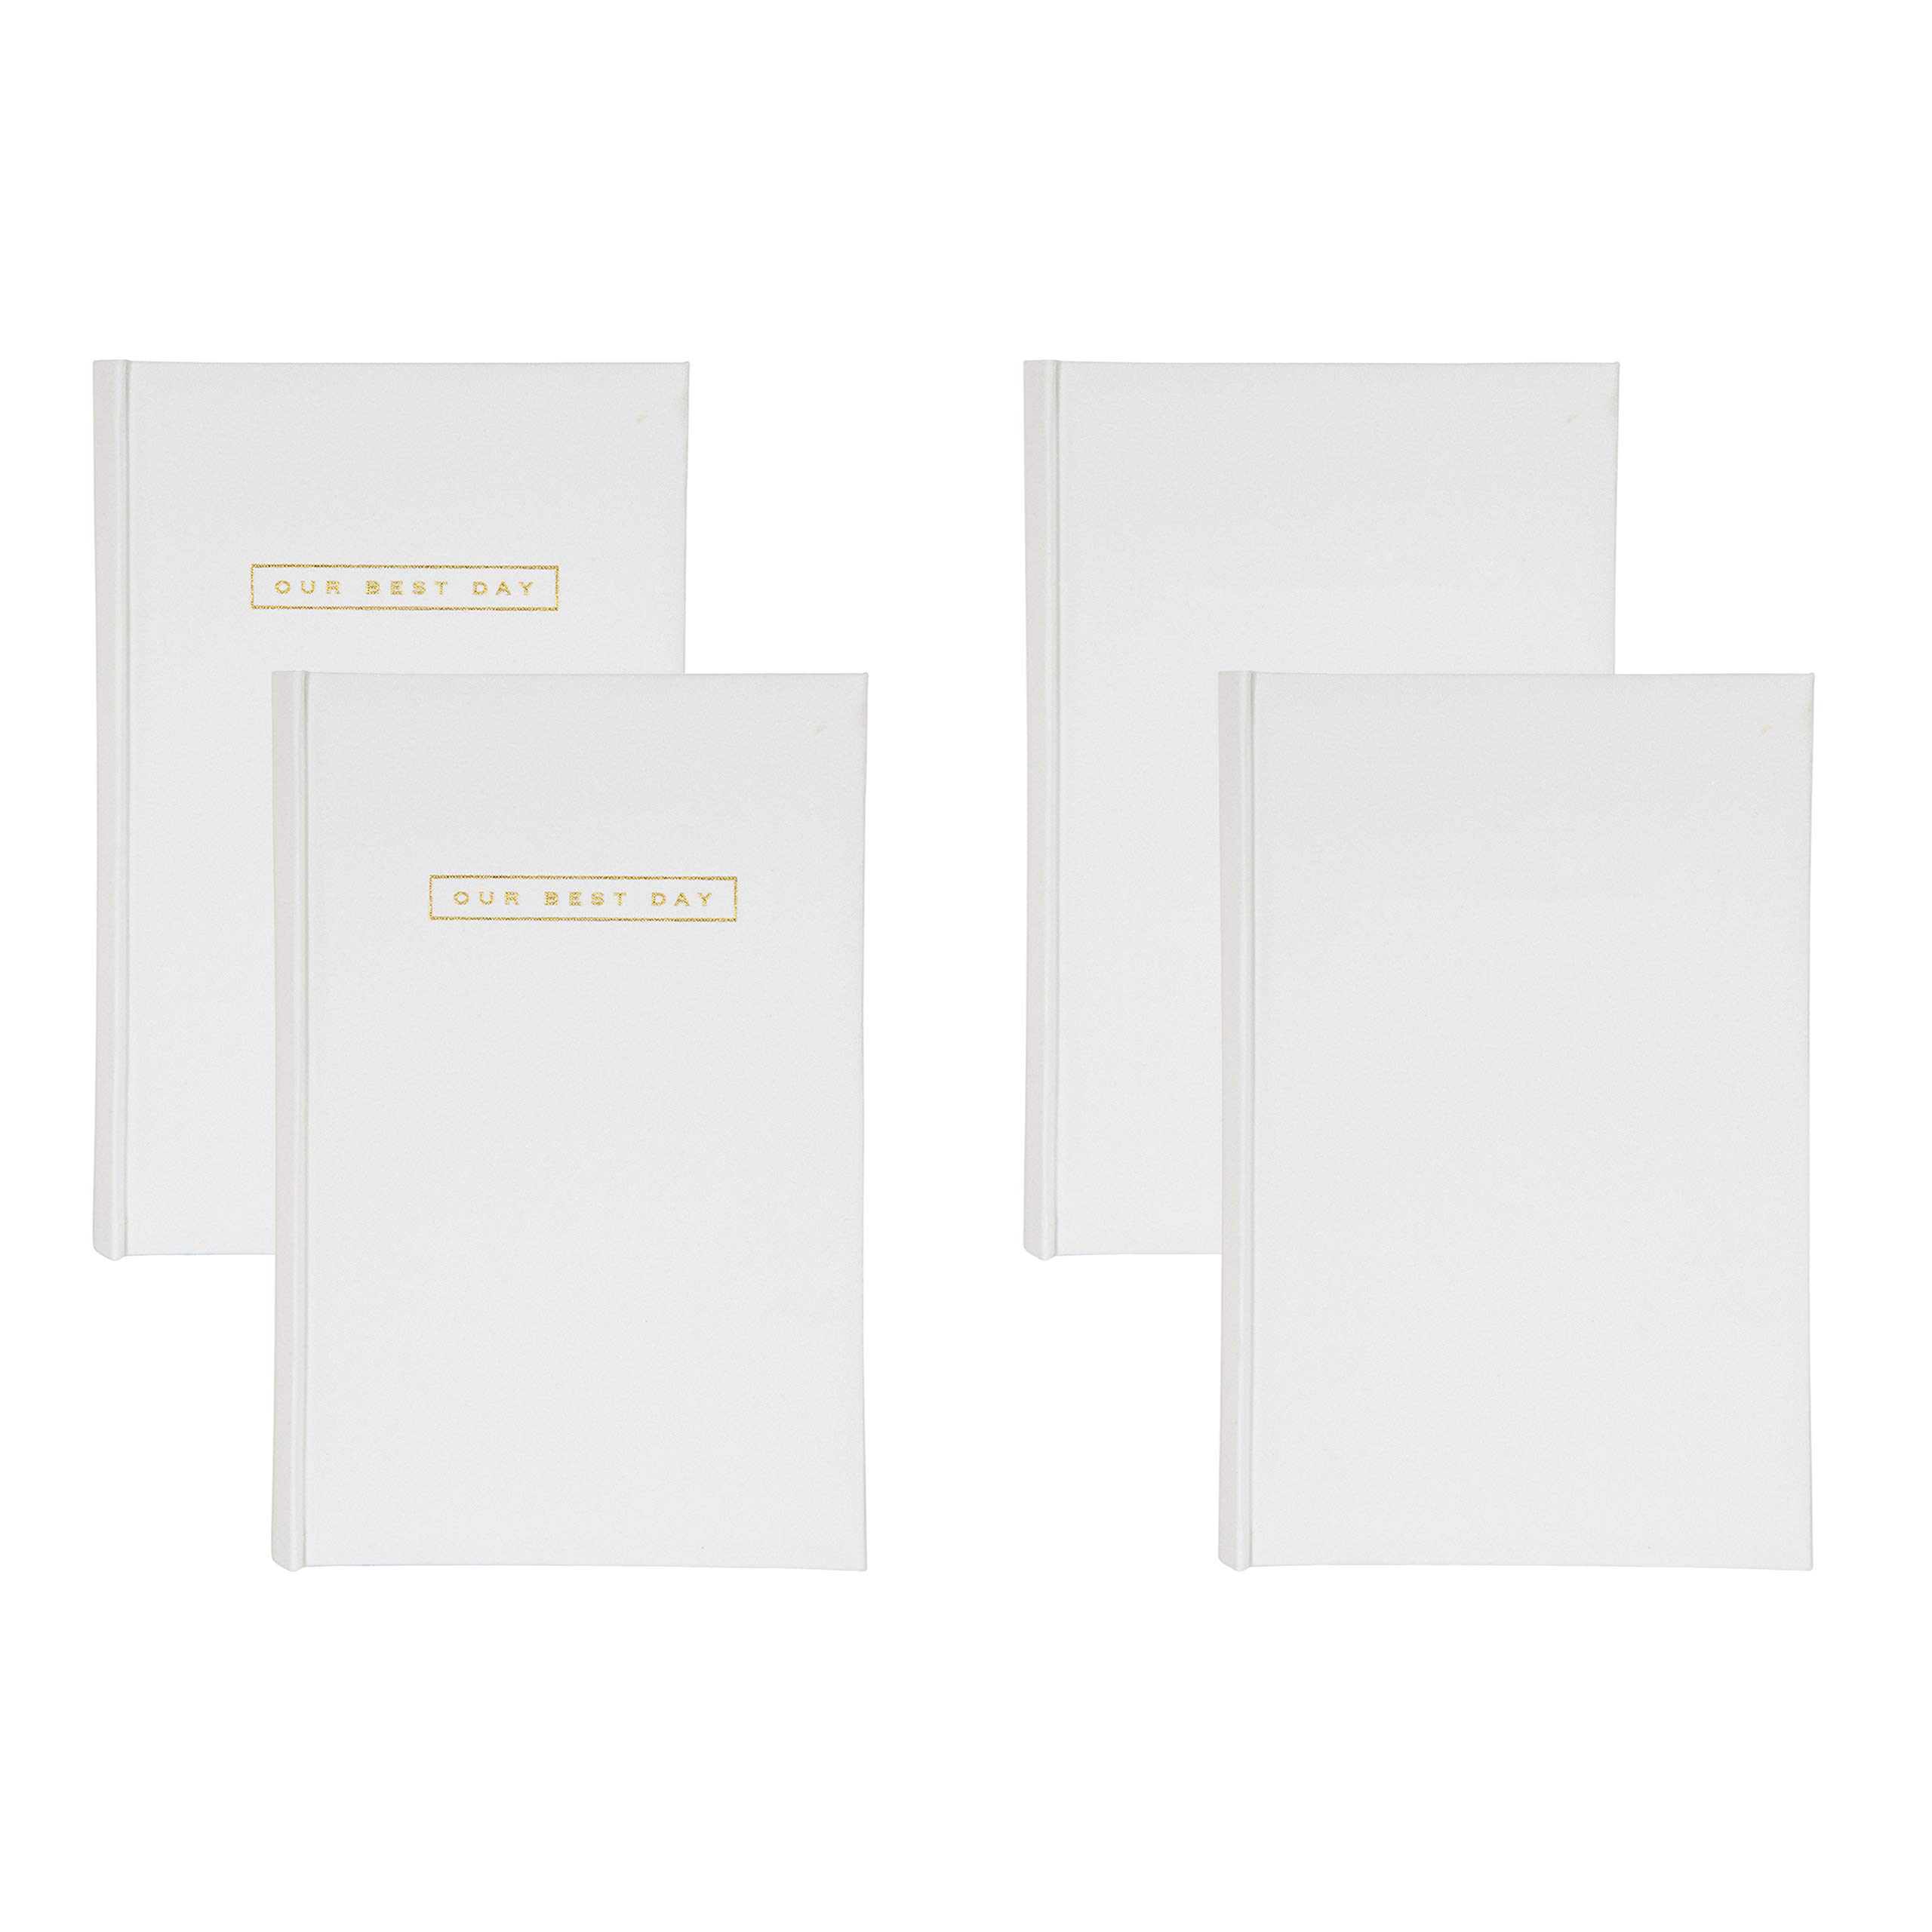 DesignOvation Fabric Deluxe Photo Album with 2 Blank and 2 Front Cover Sentiment Our Best Day in Gold Block Letters Holds 300 4x6 Photos, White, Set of 4 by DesignOvation